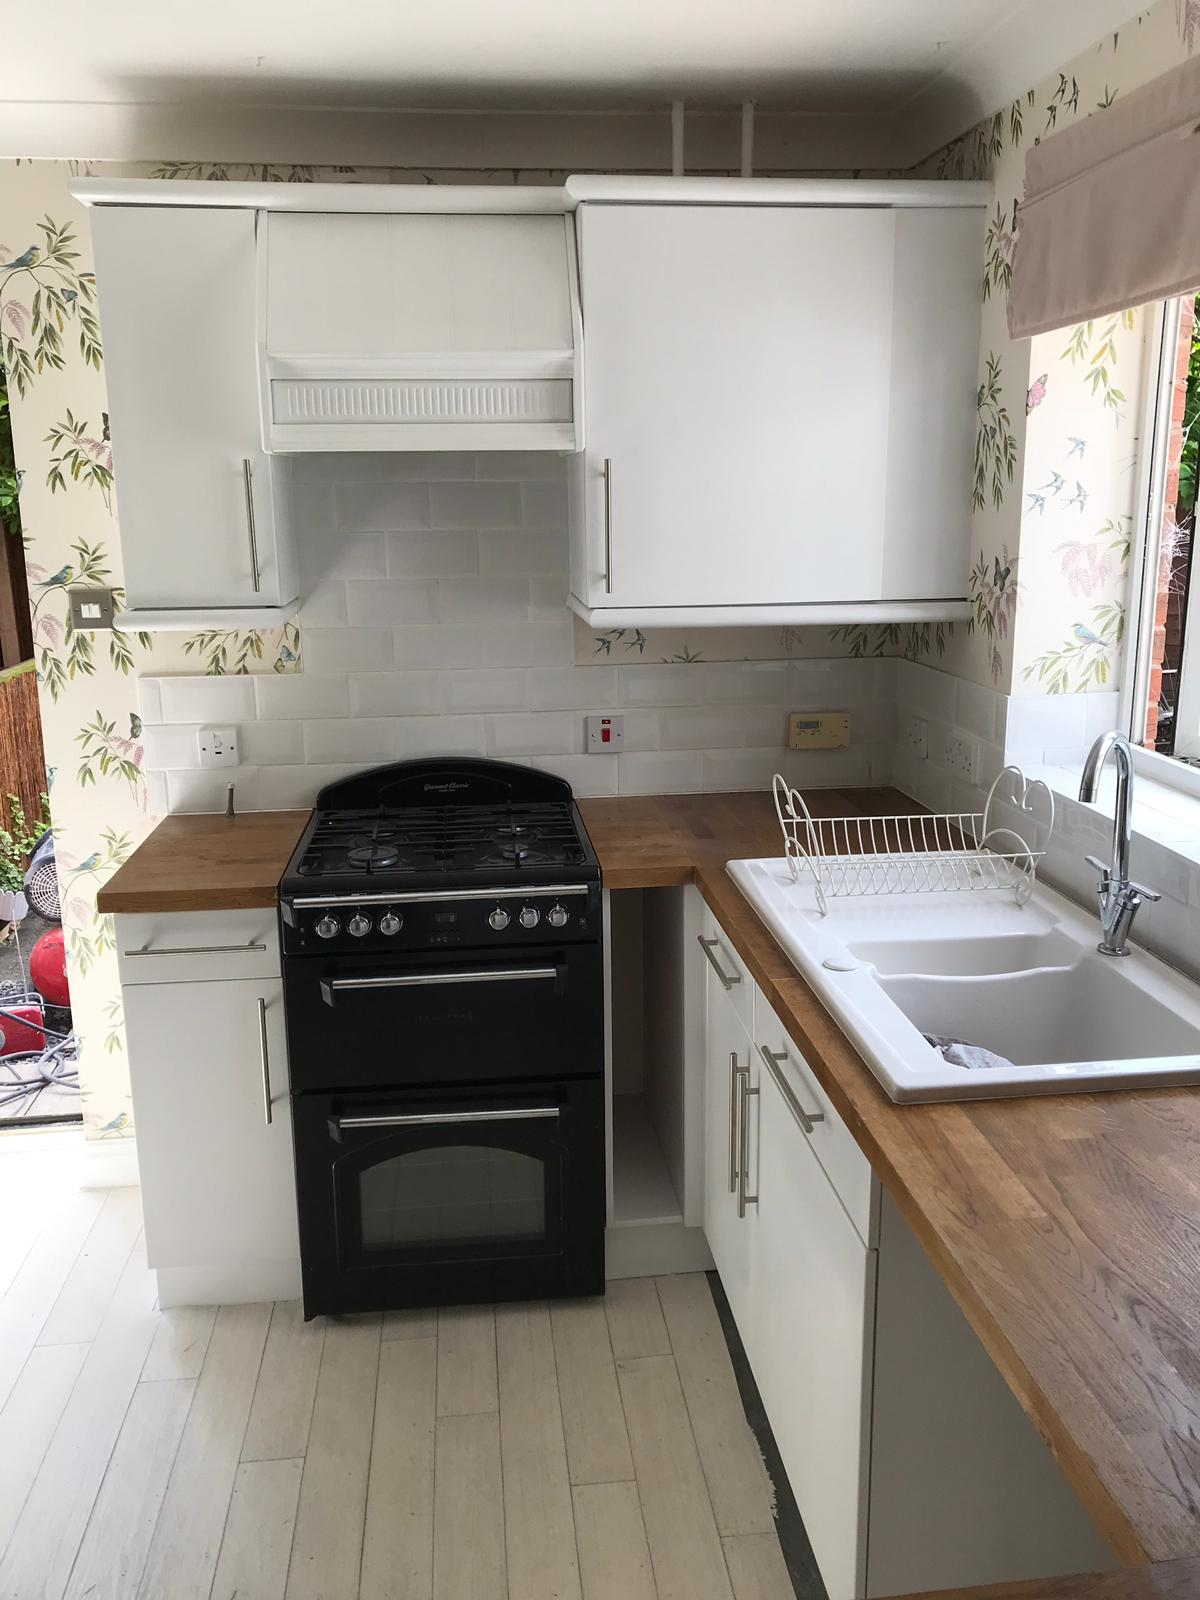 Kitchen makeovers with spray paint in Leeds west yorkshire.jpeg